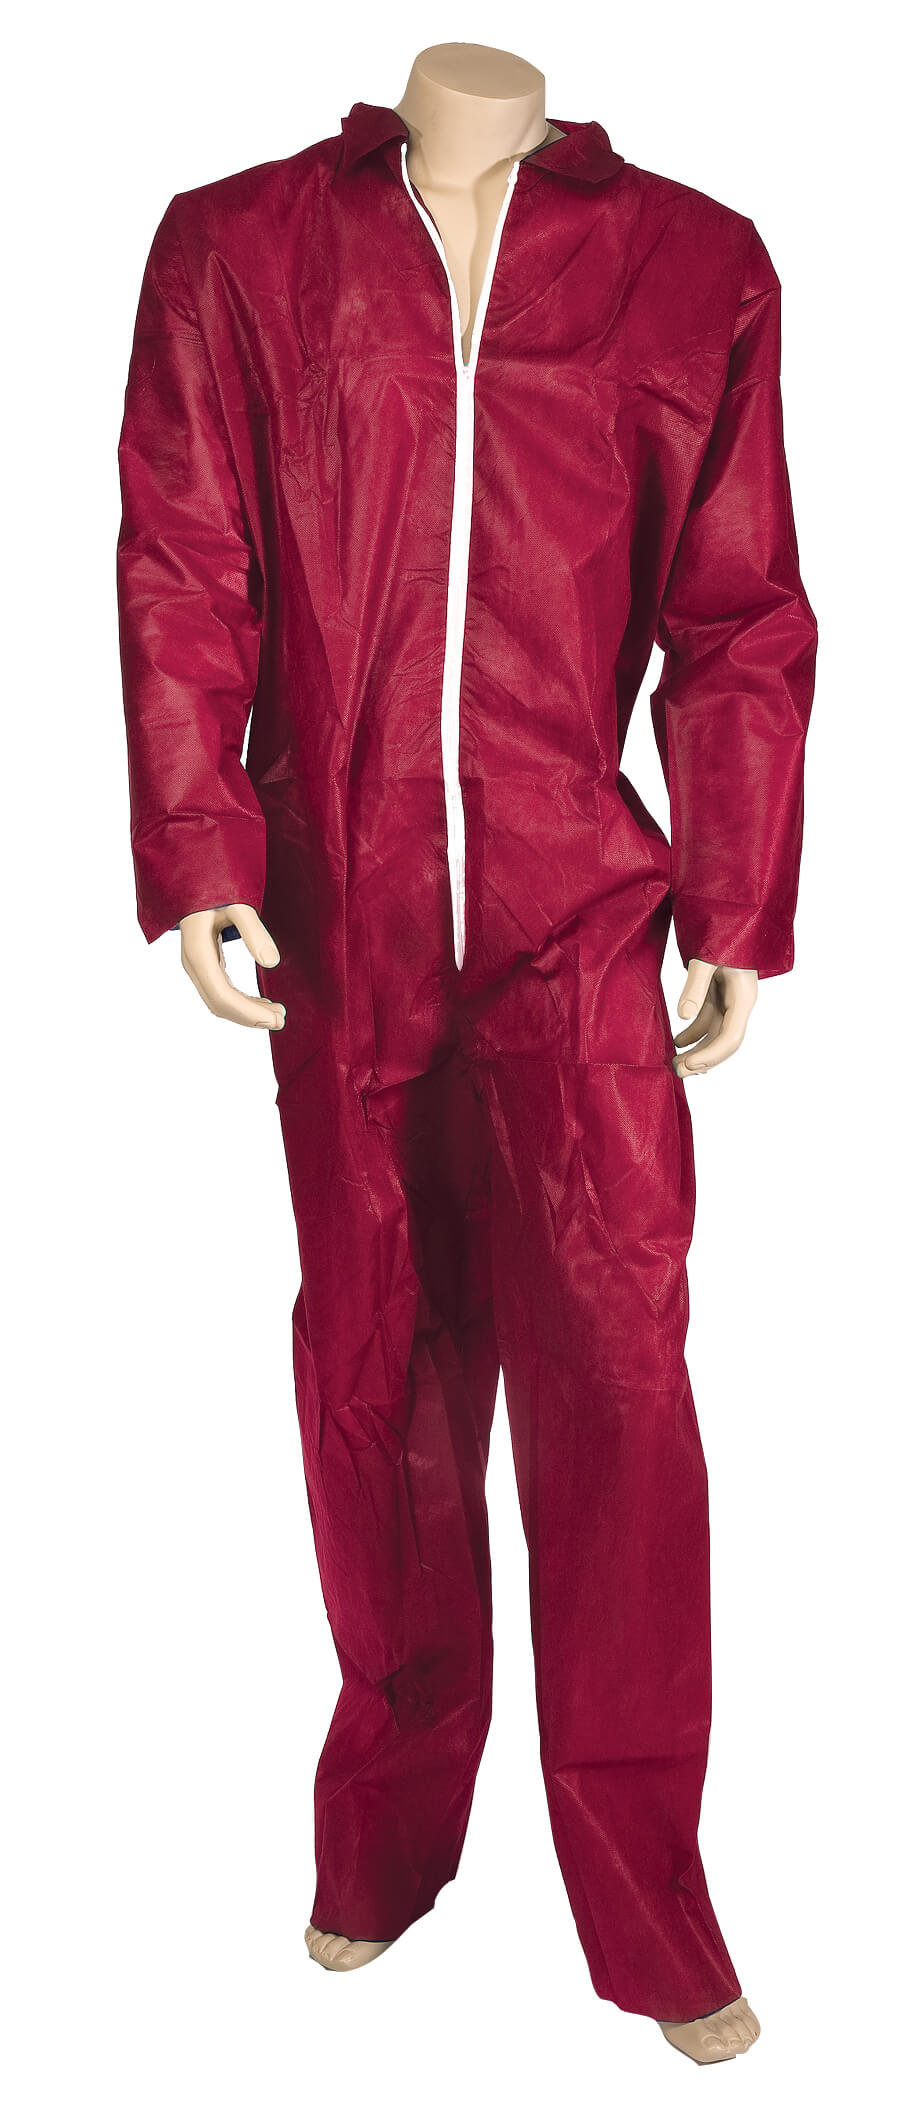 Lightweight Disposable Coverall - Red